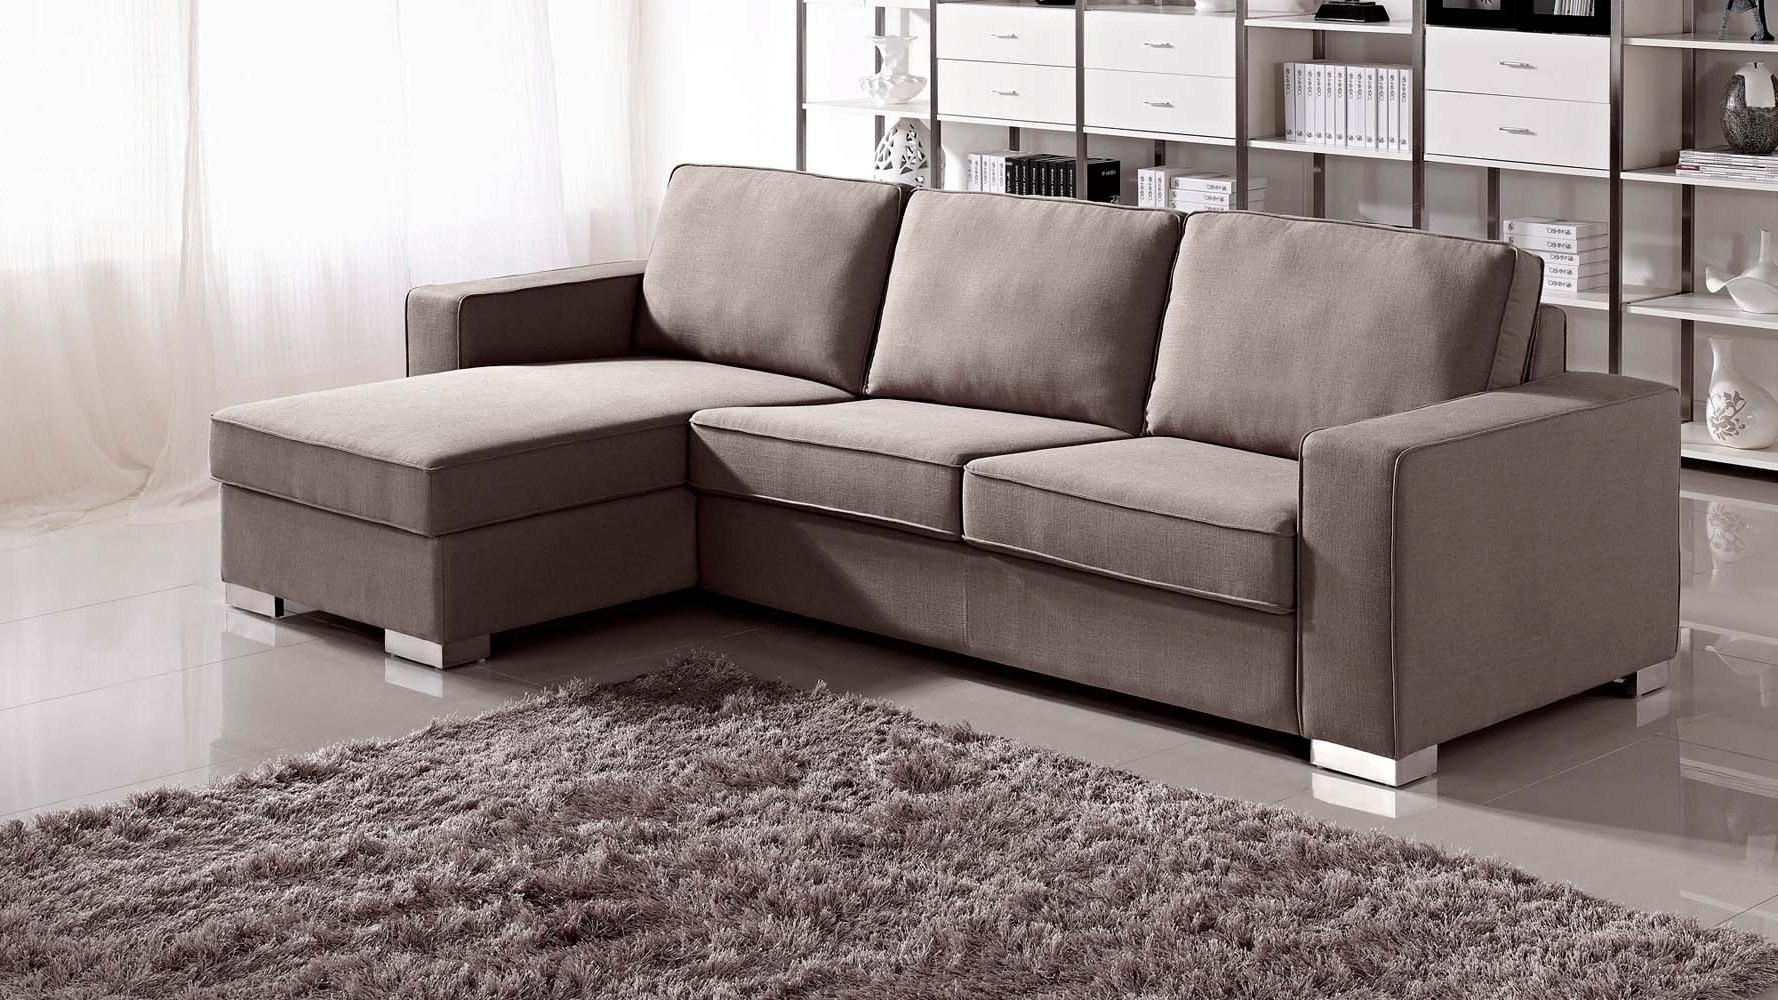 Sofas Center : Broyhill Furniture Milo Contemporary Sectional Sofa Throughout Broyhill Sectional Sofas (View 13 of 15)